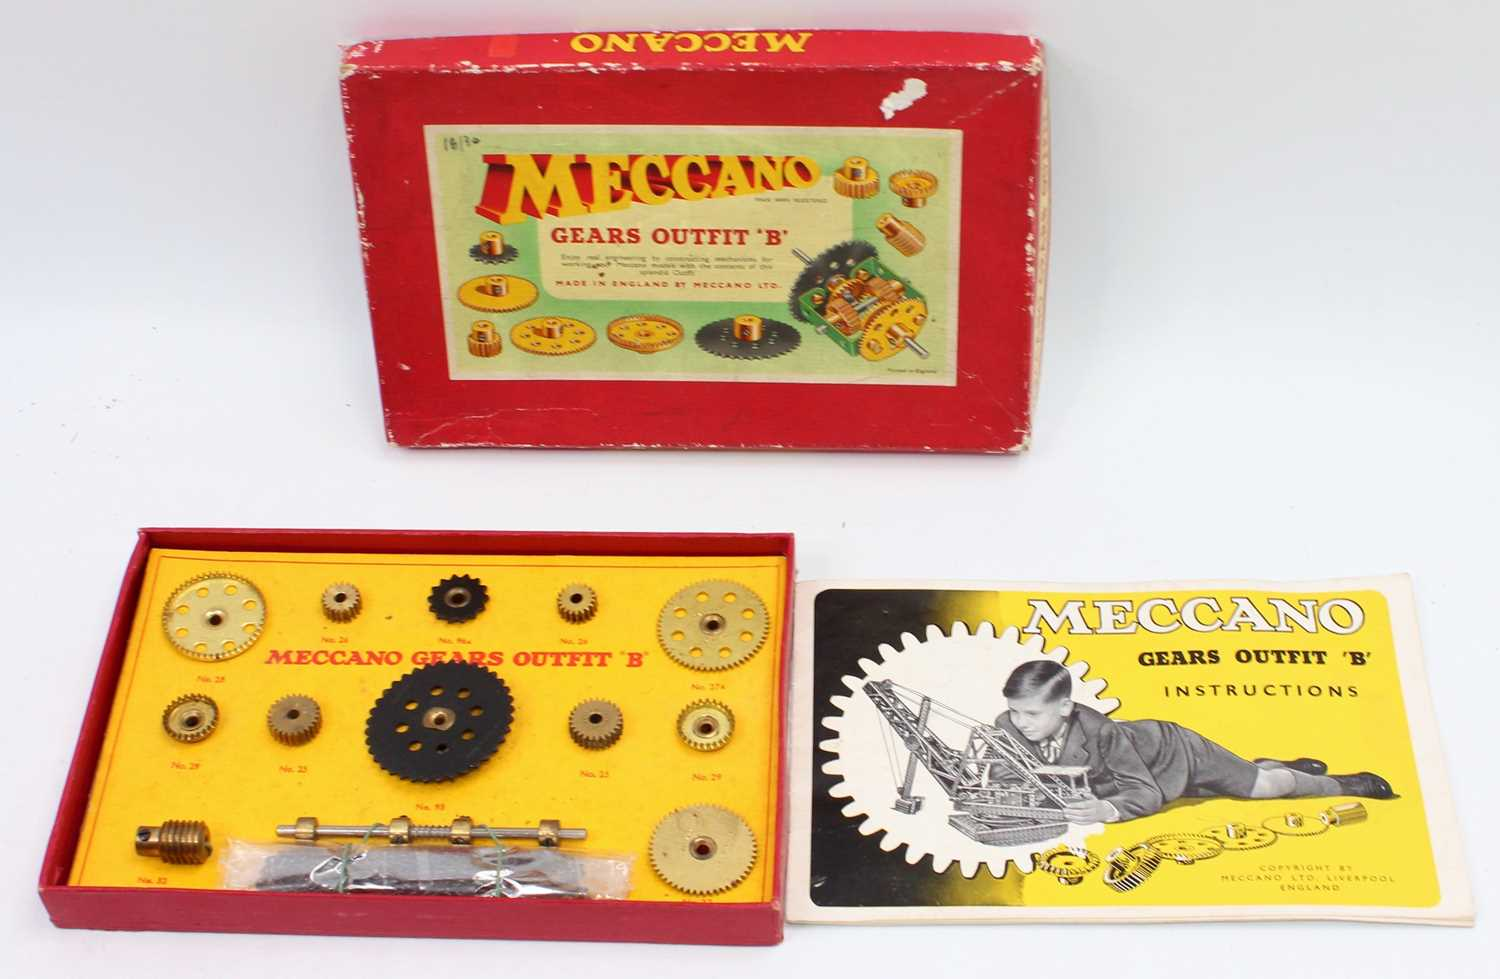 Two Meccano 1950s/60s gears outfit B box sets, both in original boxes with leaflets, both appear